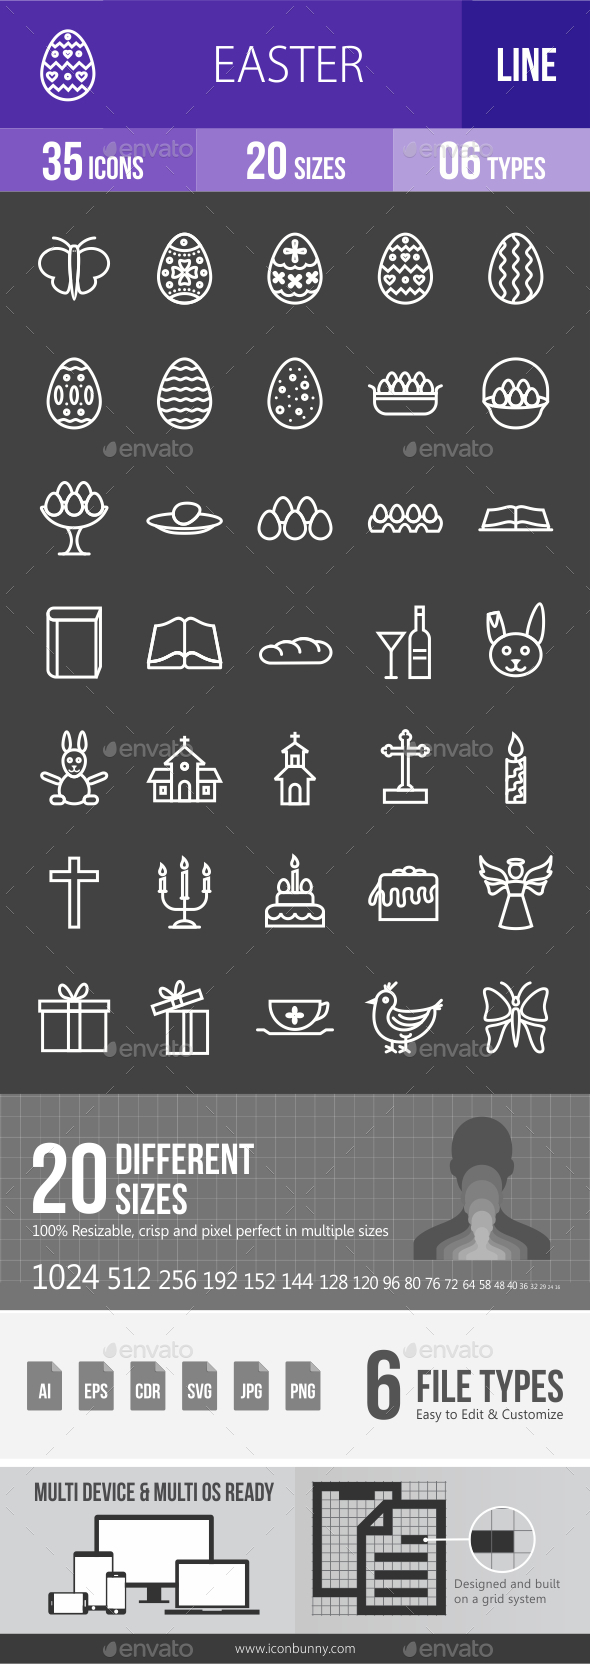 Easter Line Inverted Icons - Icons